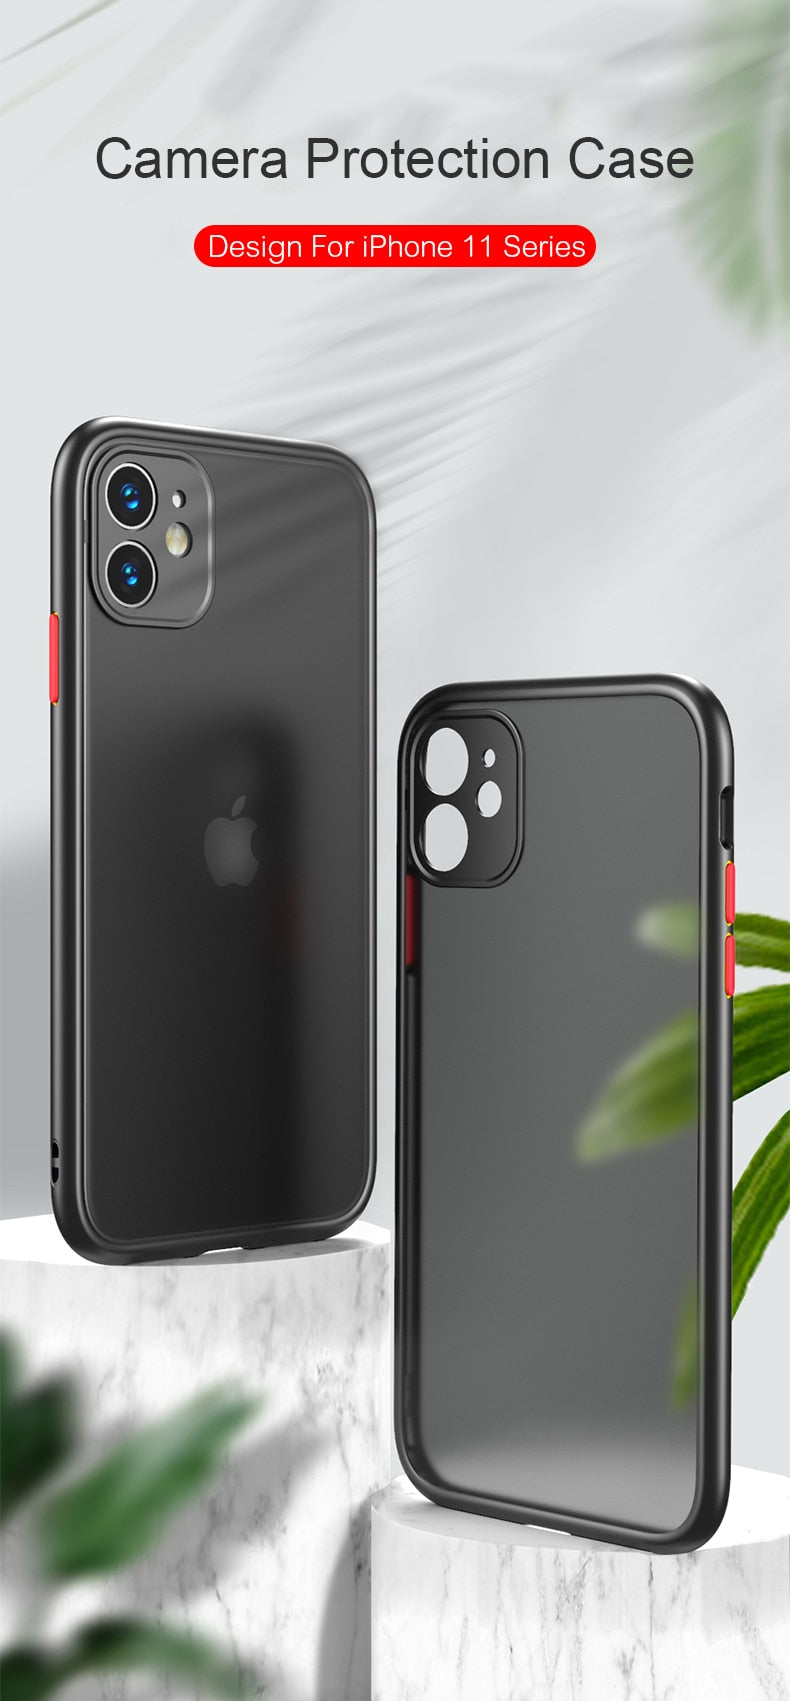 Phone Case For iPhone 11 Pro Max X XR XS Max 7 8 Plus Luxury Contrast Color Frame Matte Hard PC Protective For iPhone 11 Case - Coeexus